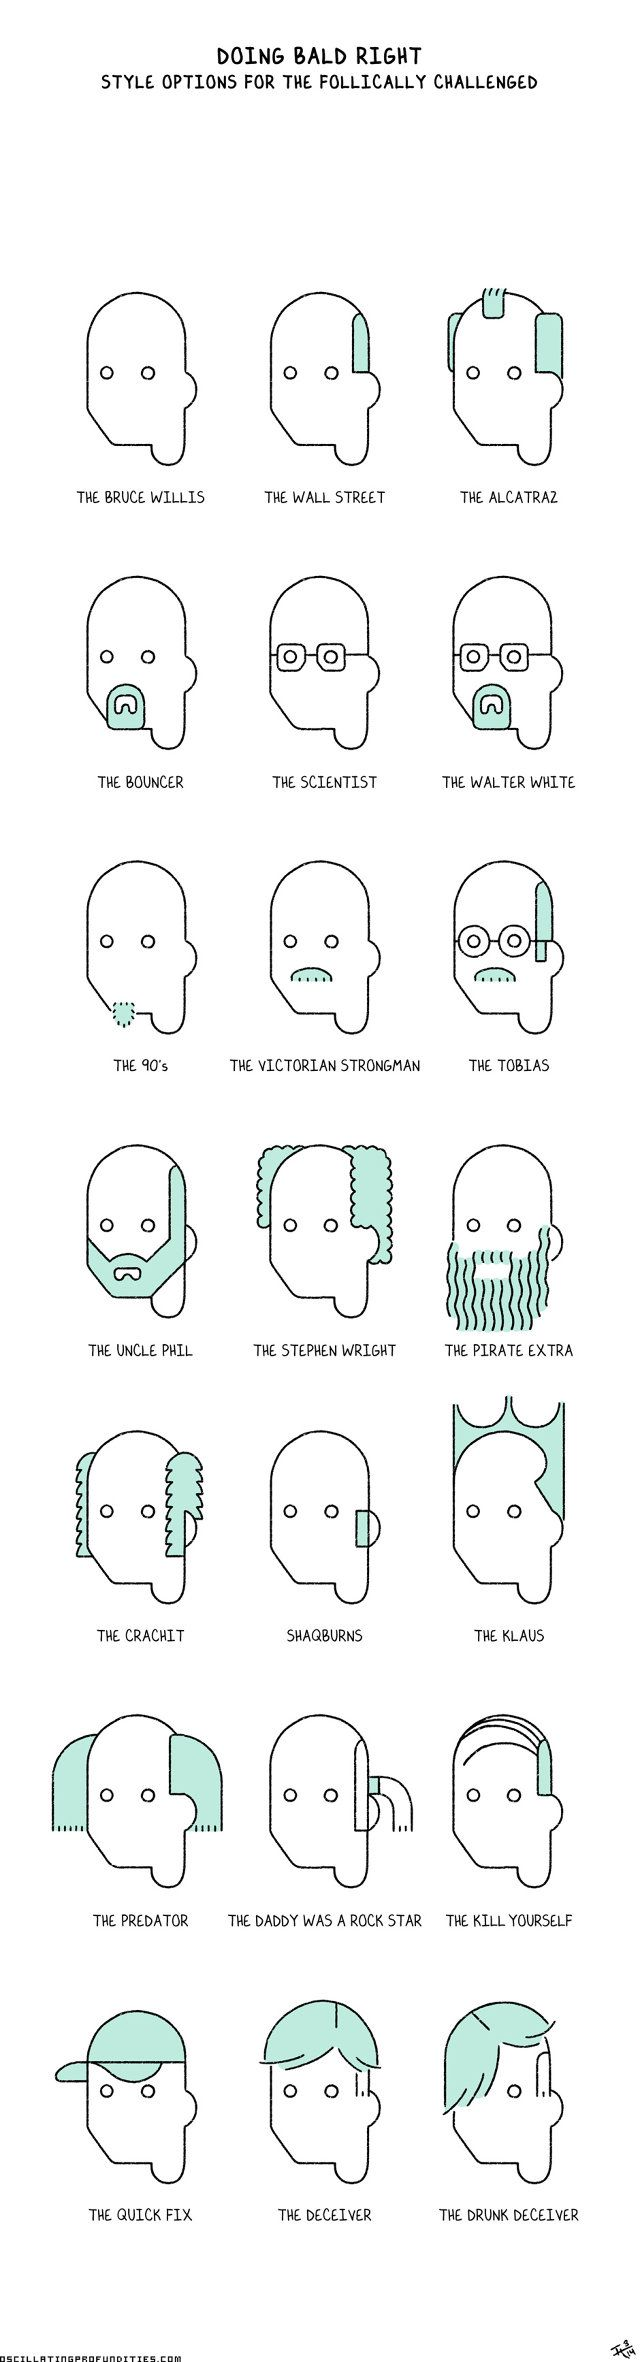 1 | See At Least 18 Different, Pop-Culture-Inspired Ways To Be Bald | Co.Create | creativity + culture + commerce